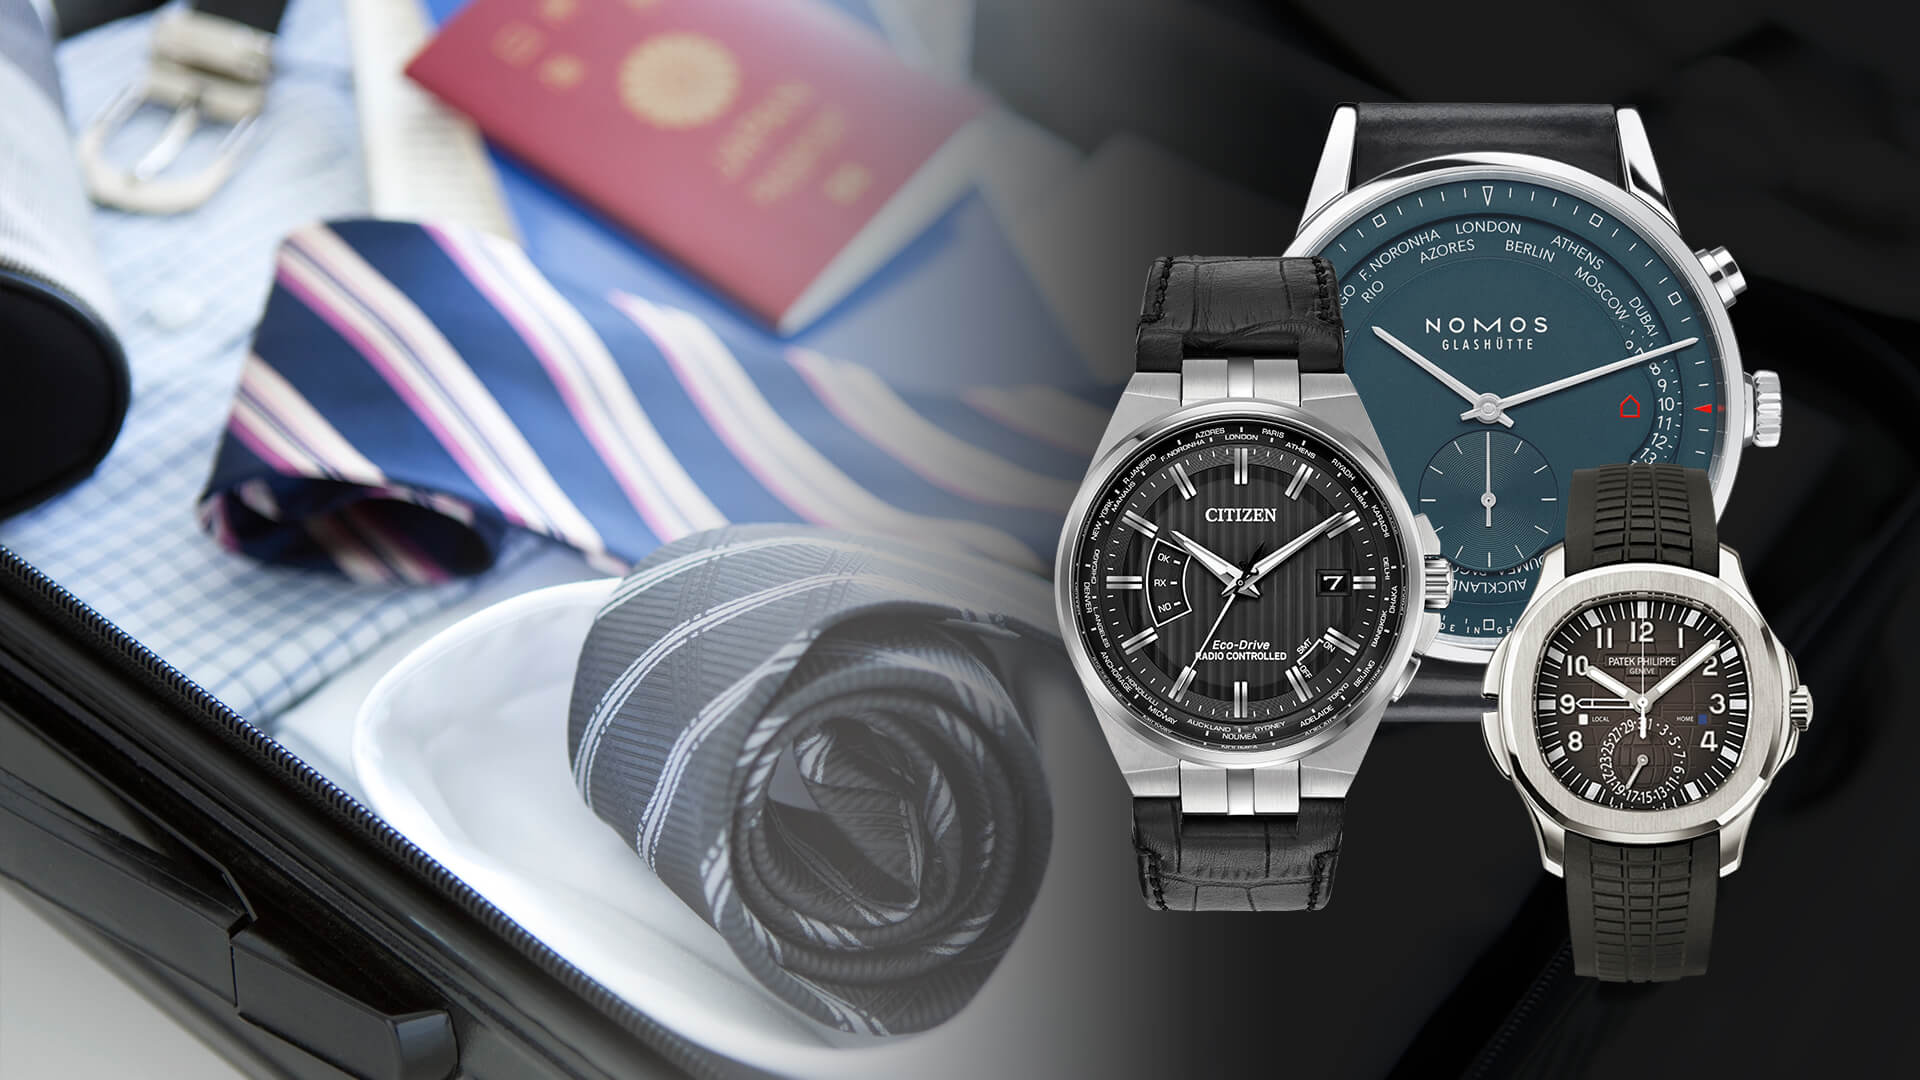 Watch 101: Three KILLER Travel Watches for Your End of Summer Trips